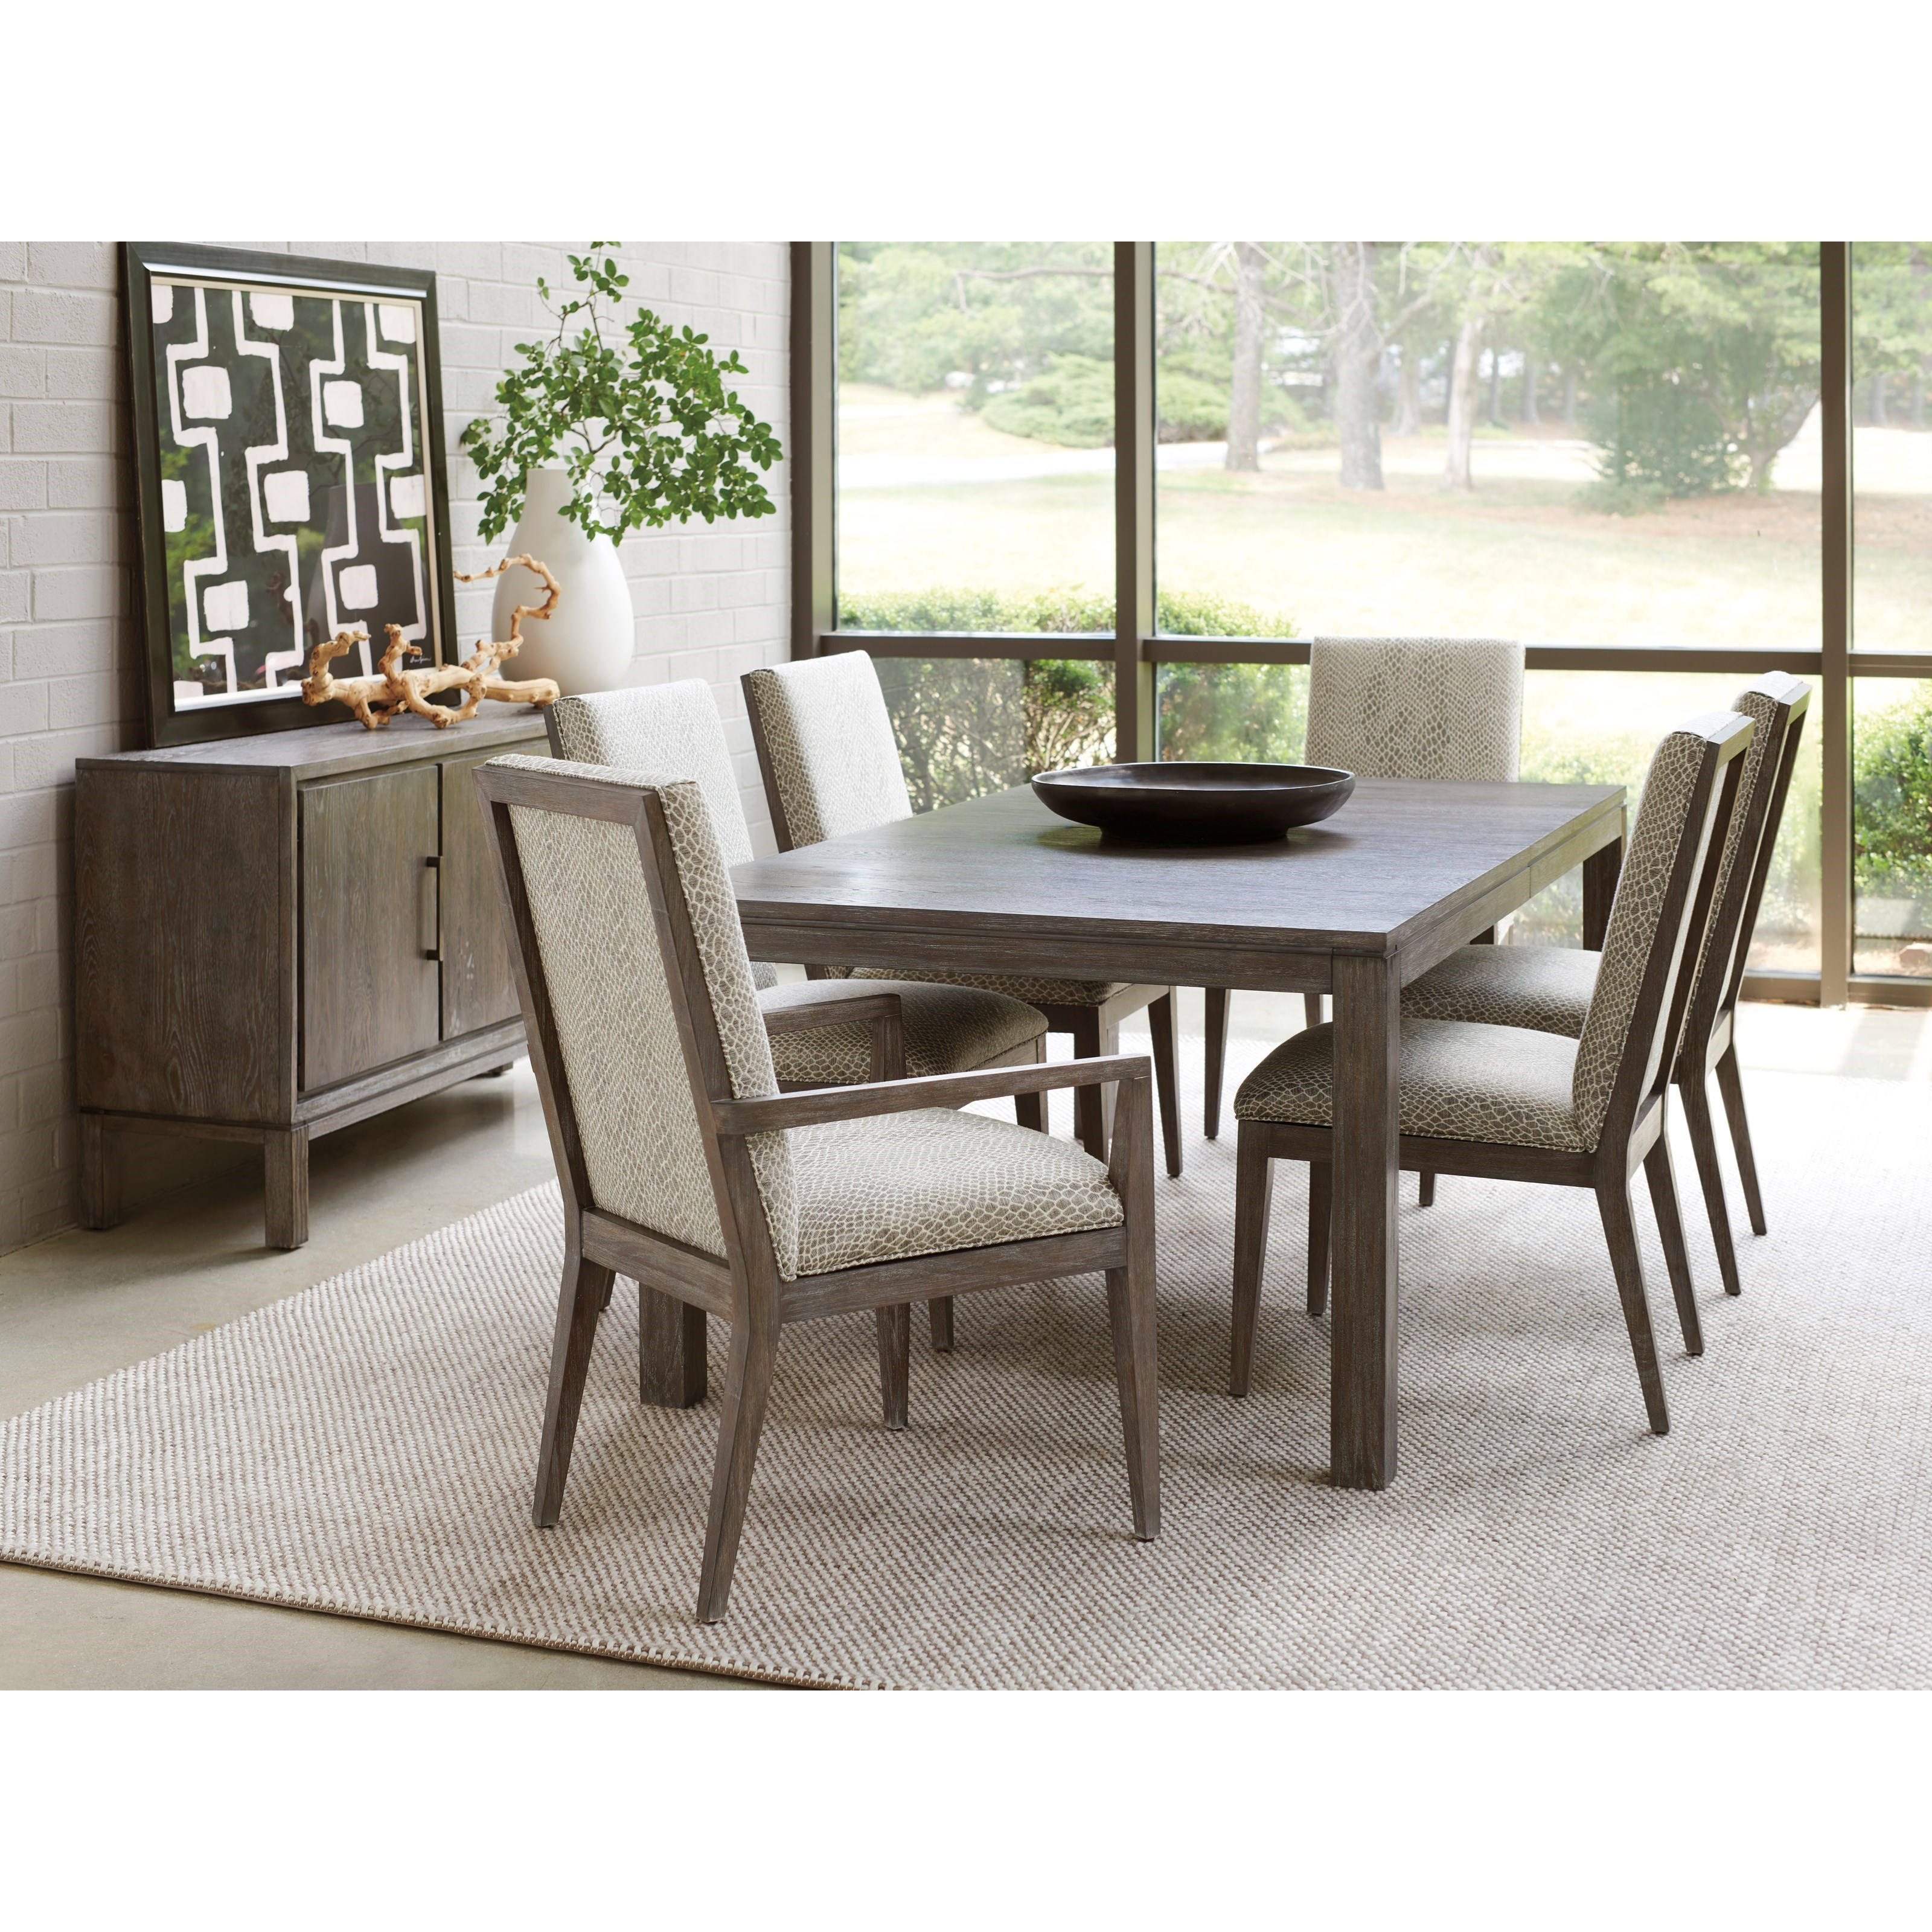 Santana Formal Dining Group by Lexington at Jacksonville Furniture Mart